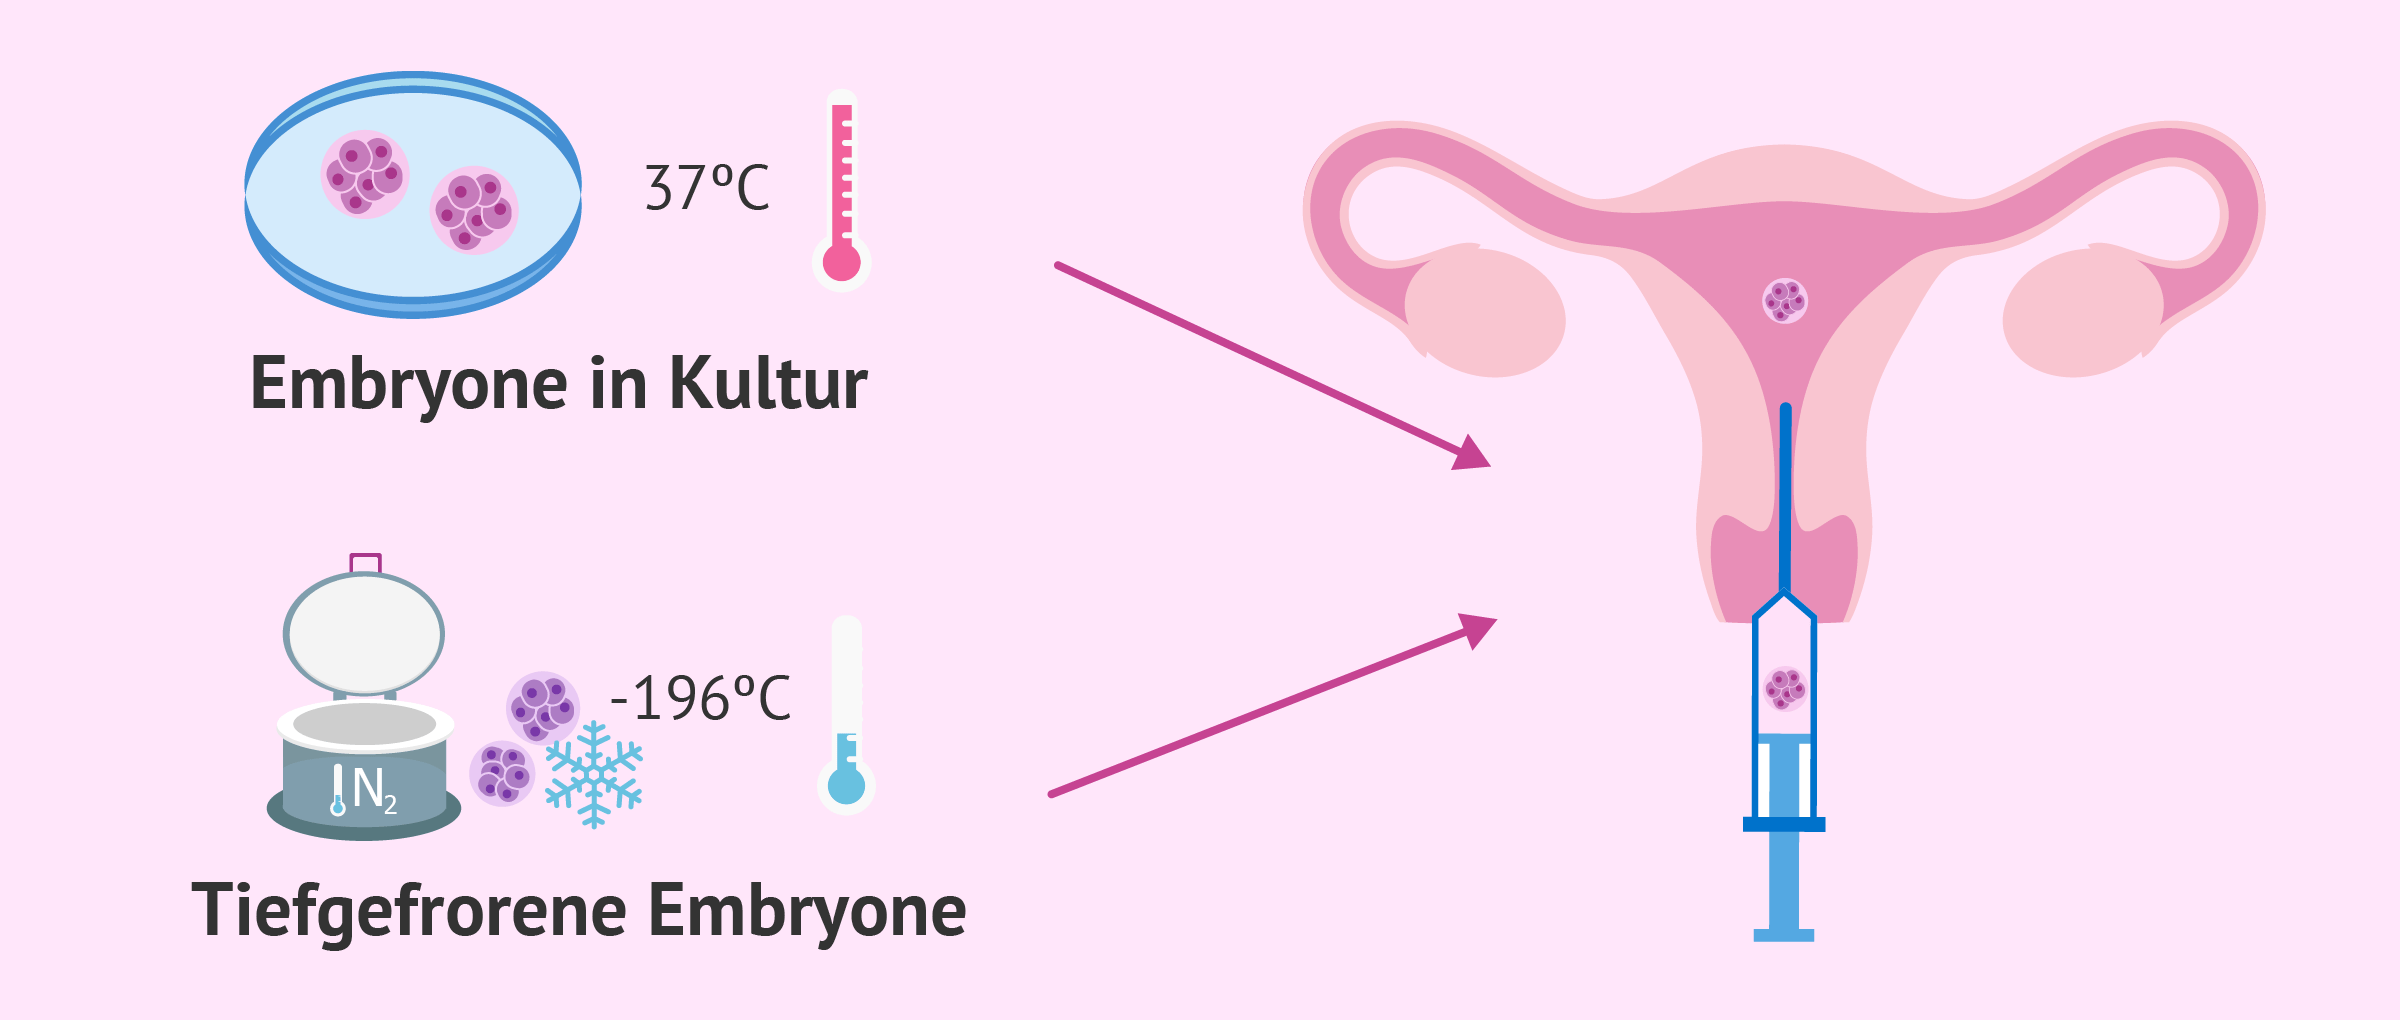 Der Embryotransfer